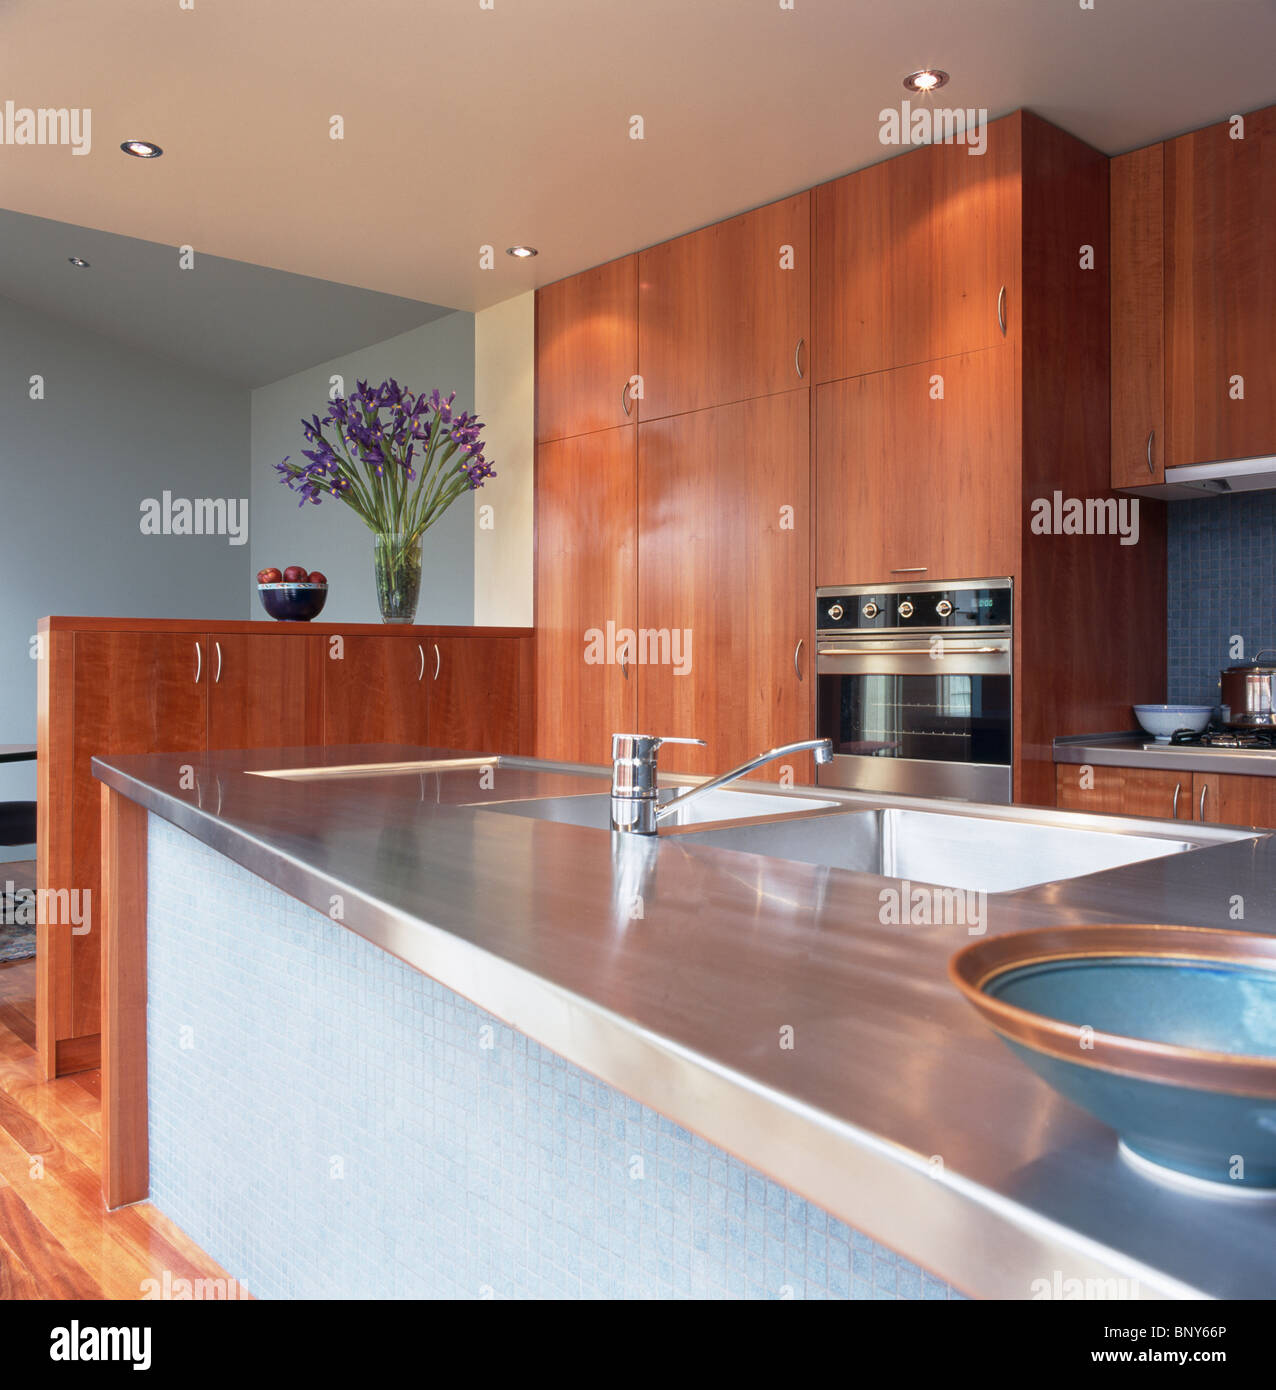 Stainless Steel Worktop On Island Unit With Sink In Pale